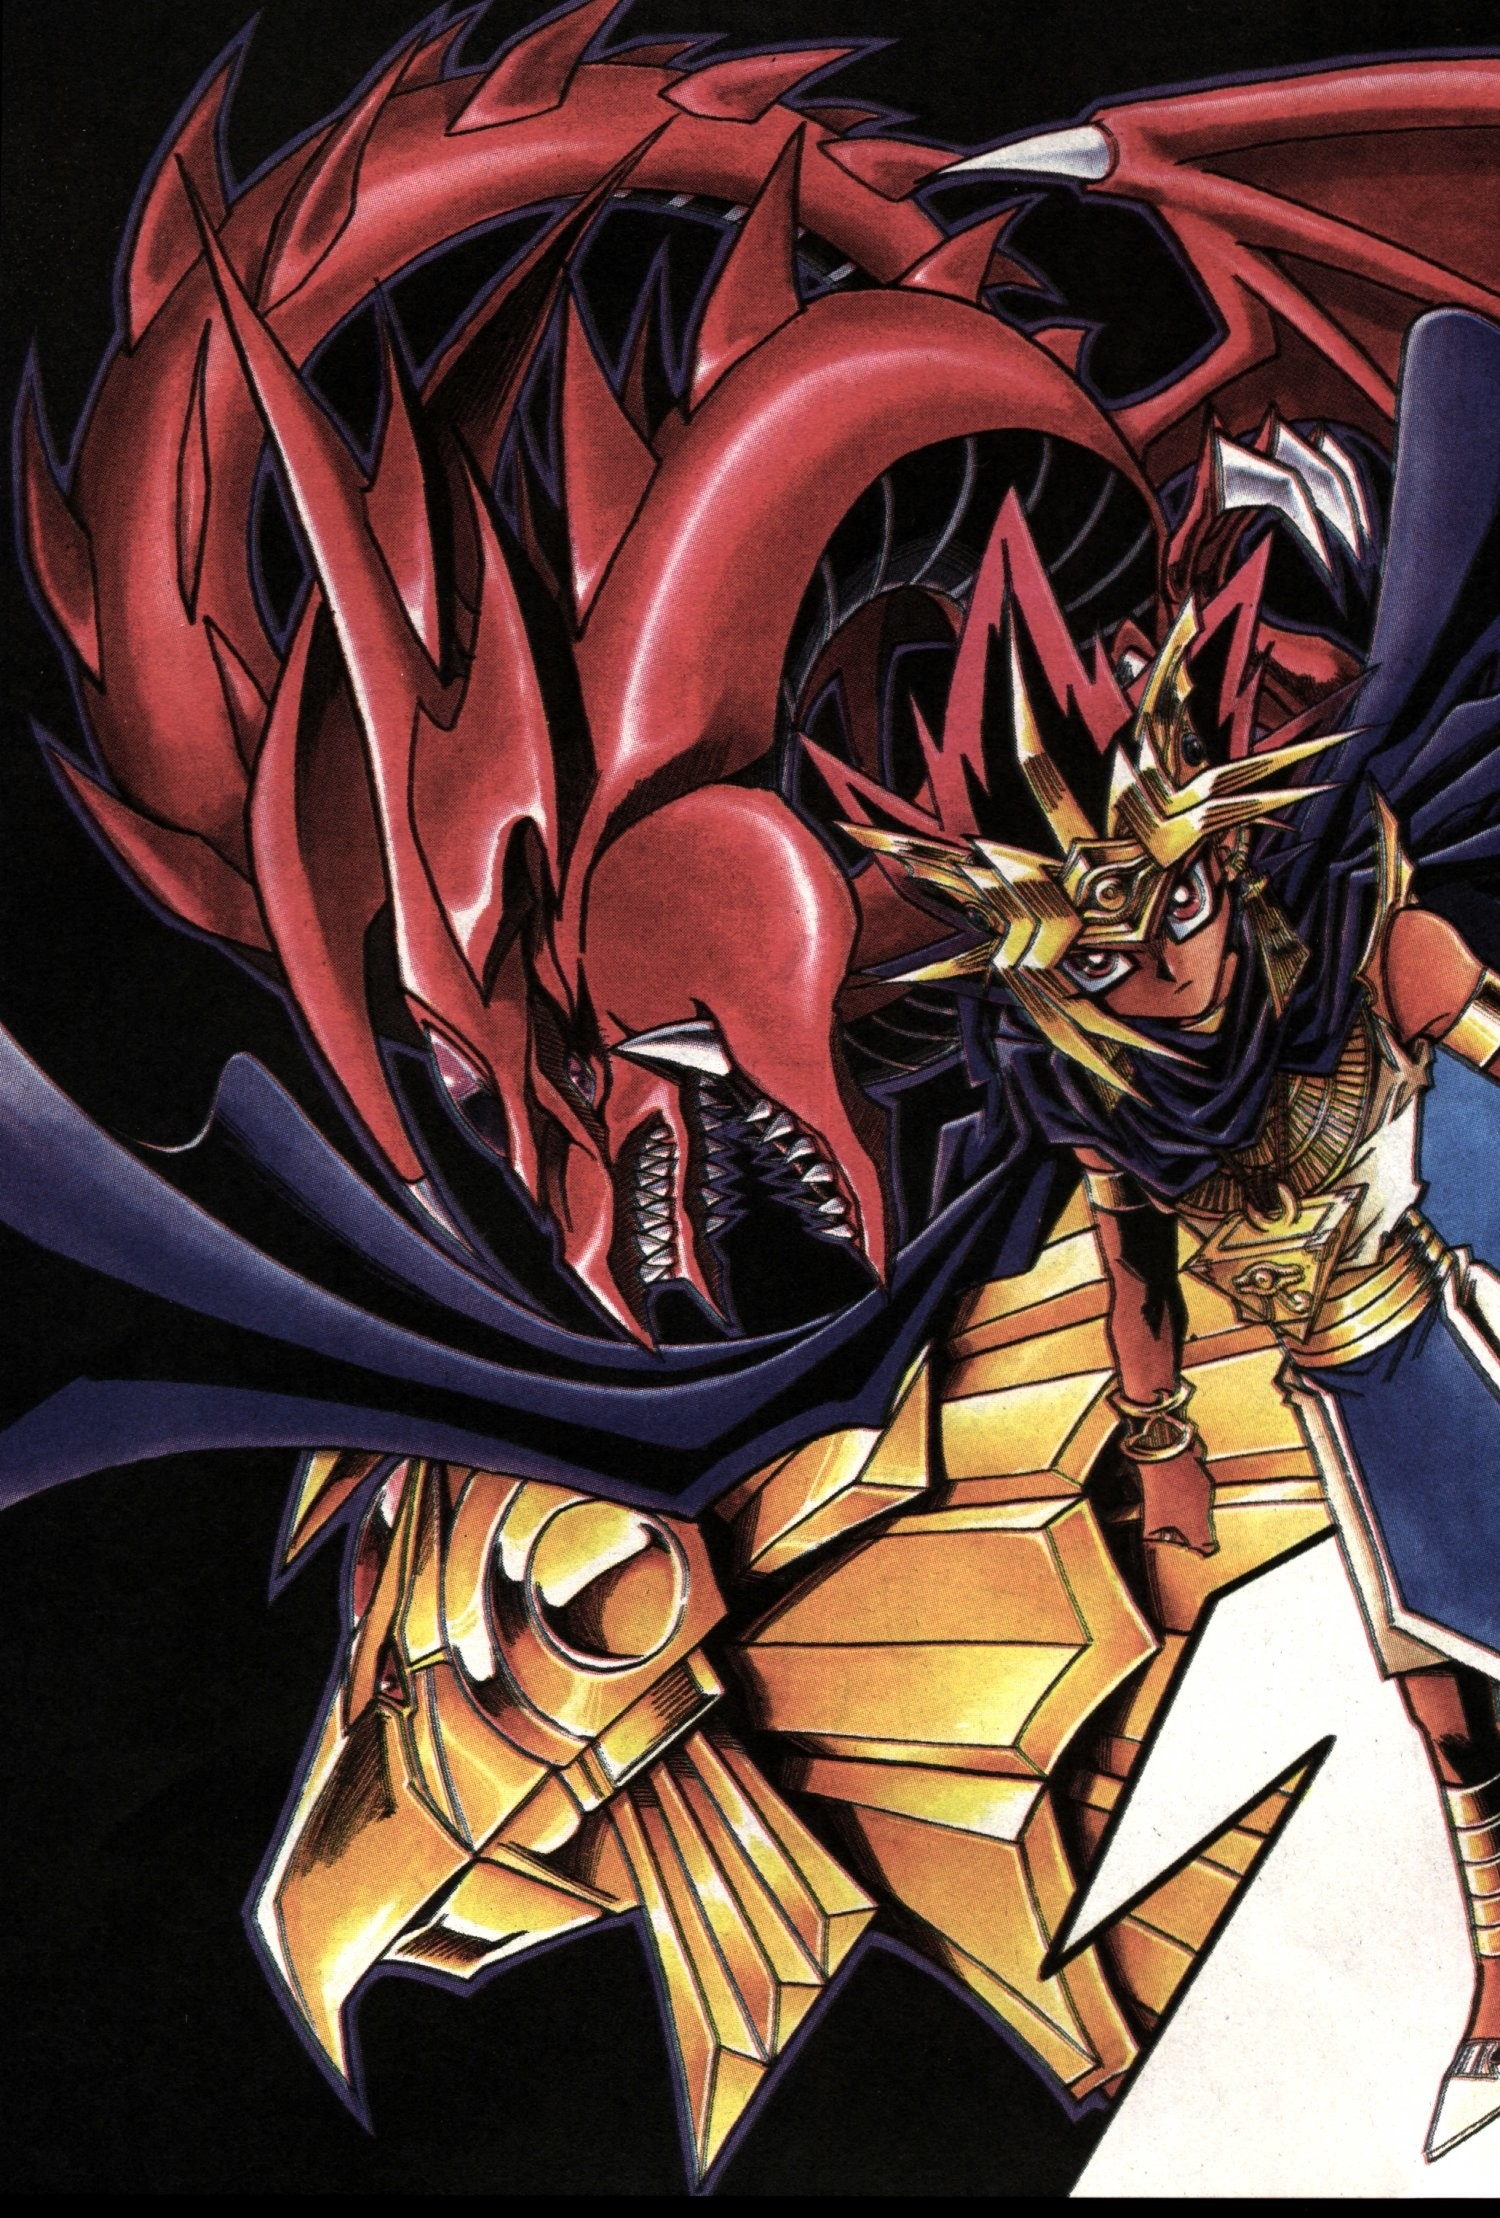 1500x2218 View Fullsize Yu Gi Oh Duel Monsters Image